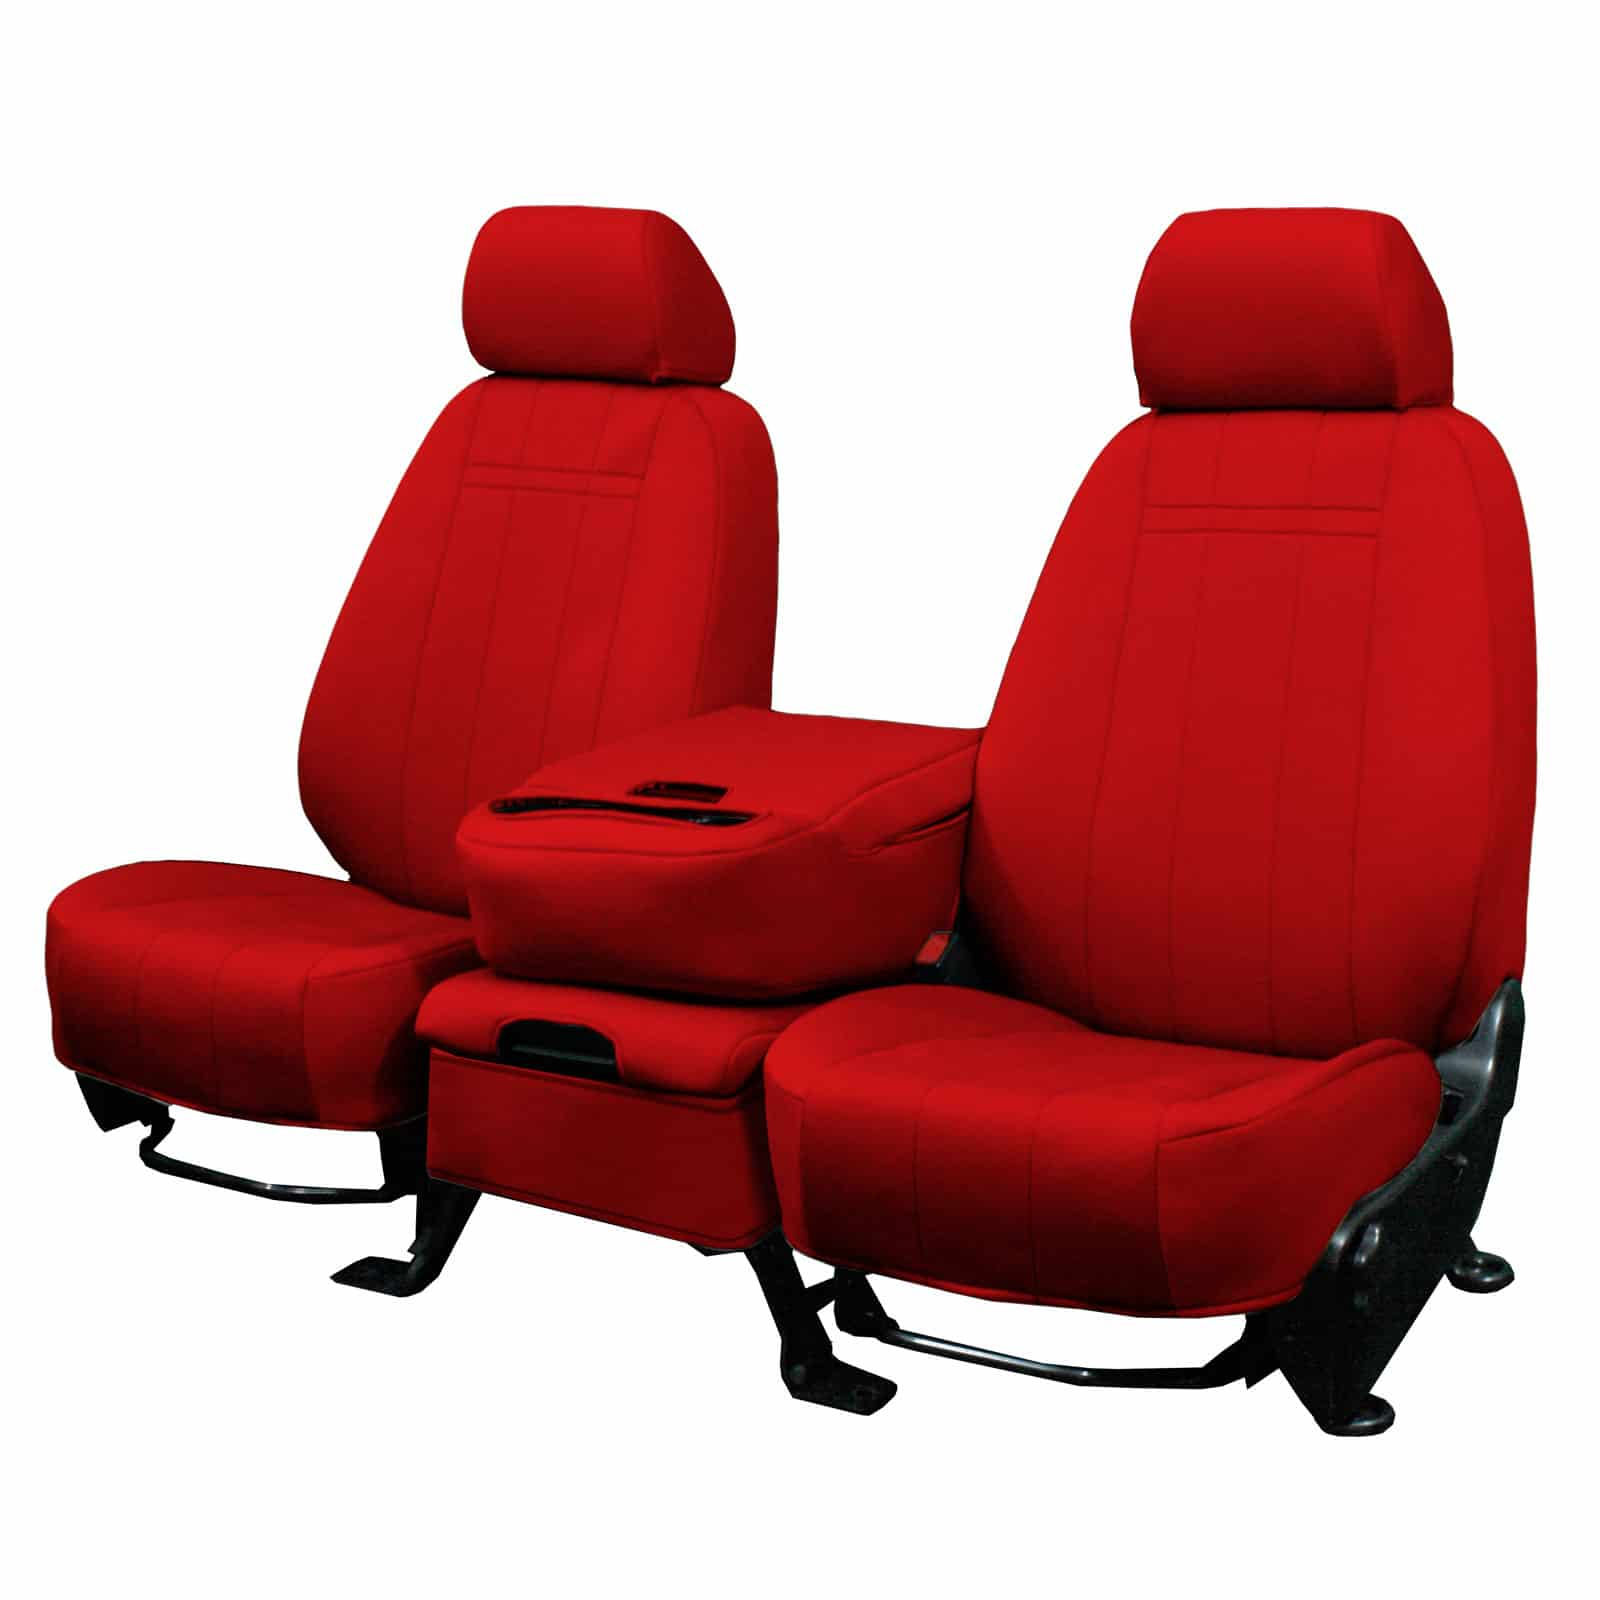 fabric chair covers to buy table and chairs for sale cheap neosupreme seat cars trucks suvs made in